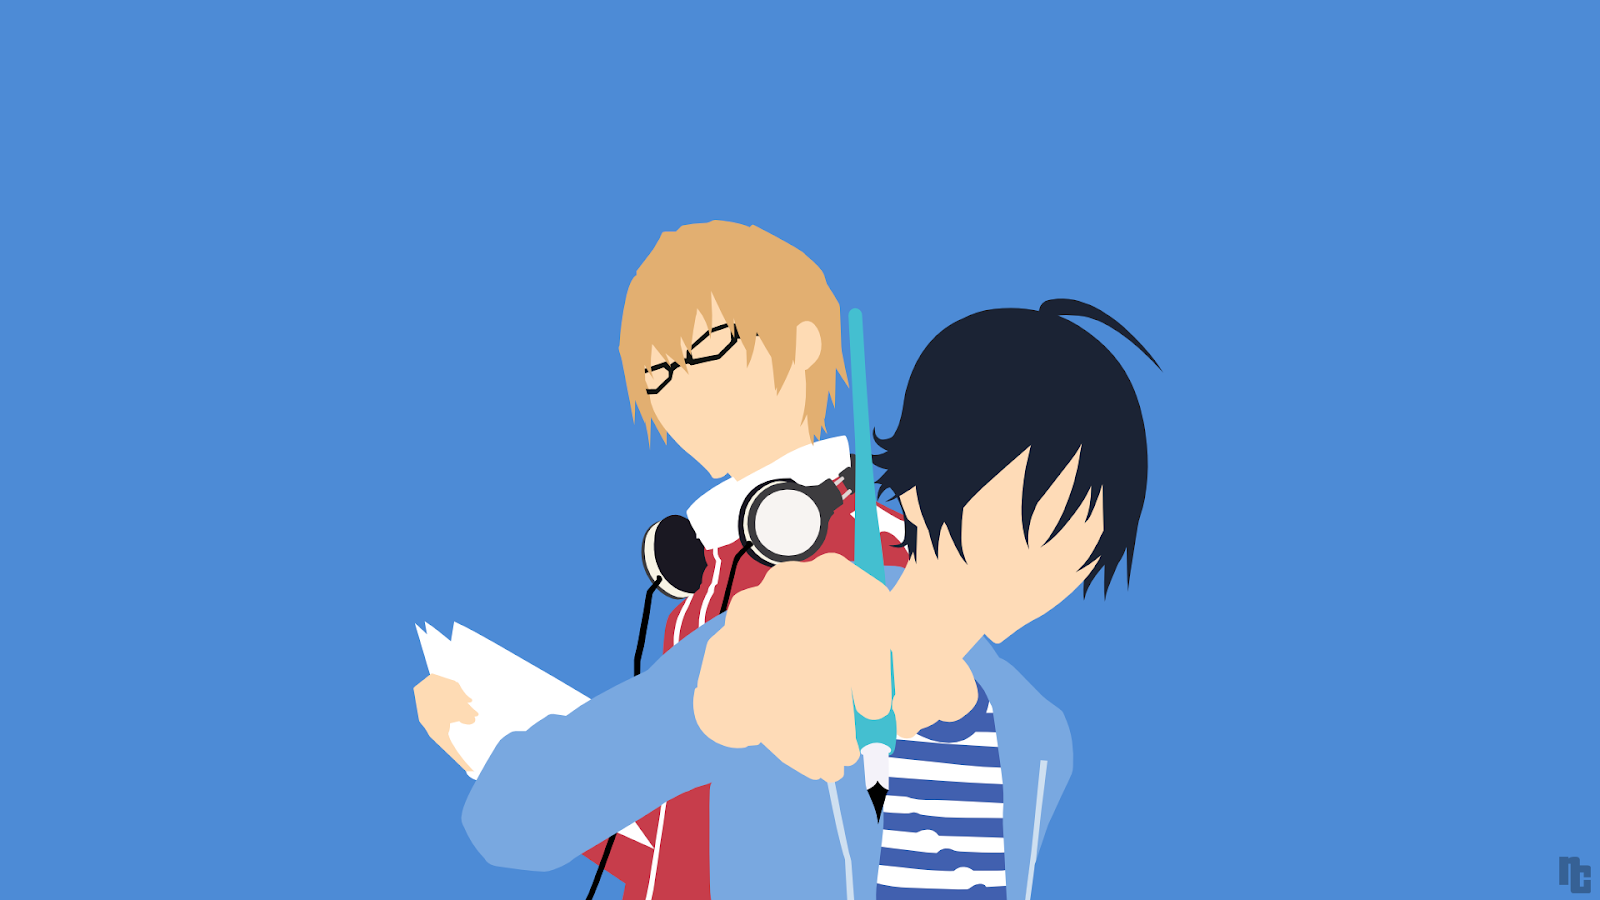 Bakuman anime wallpapers